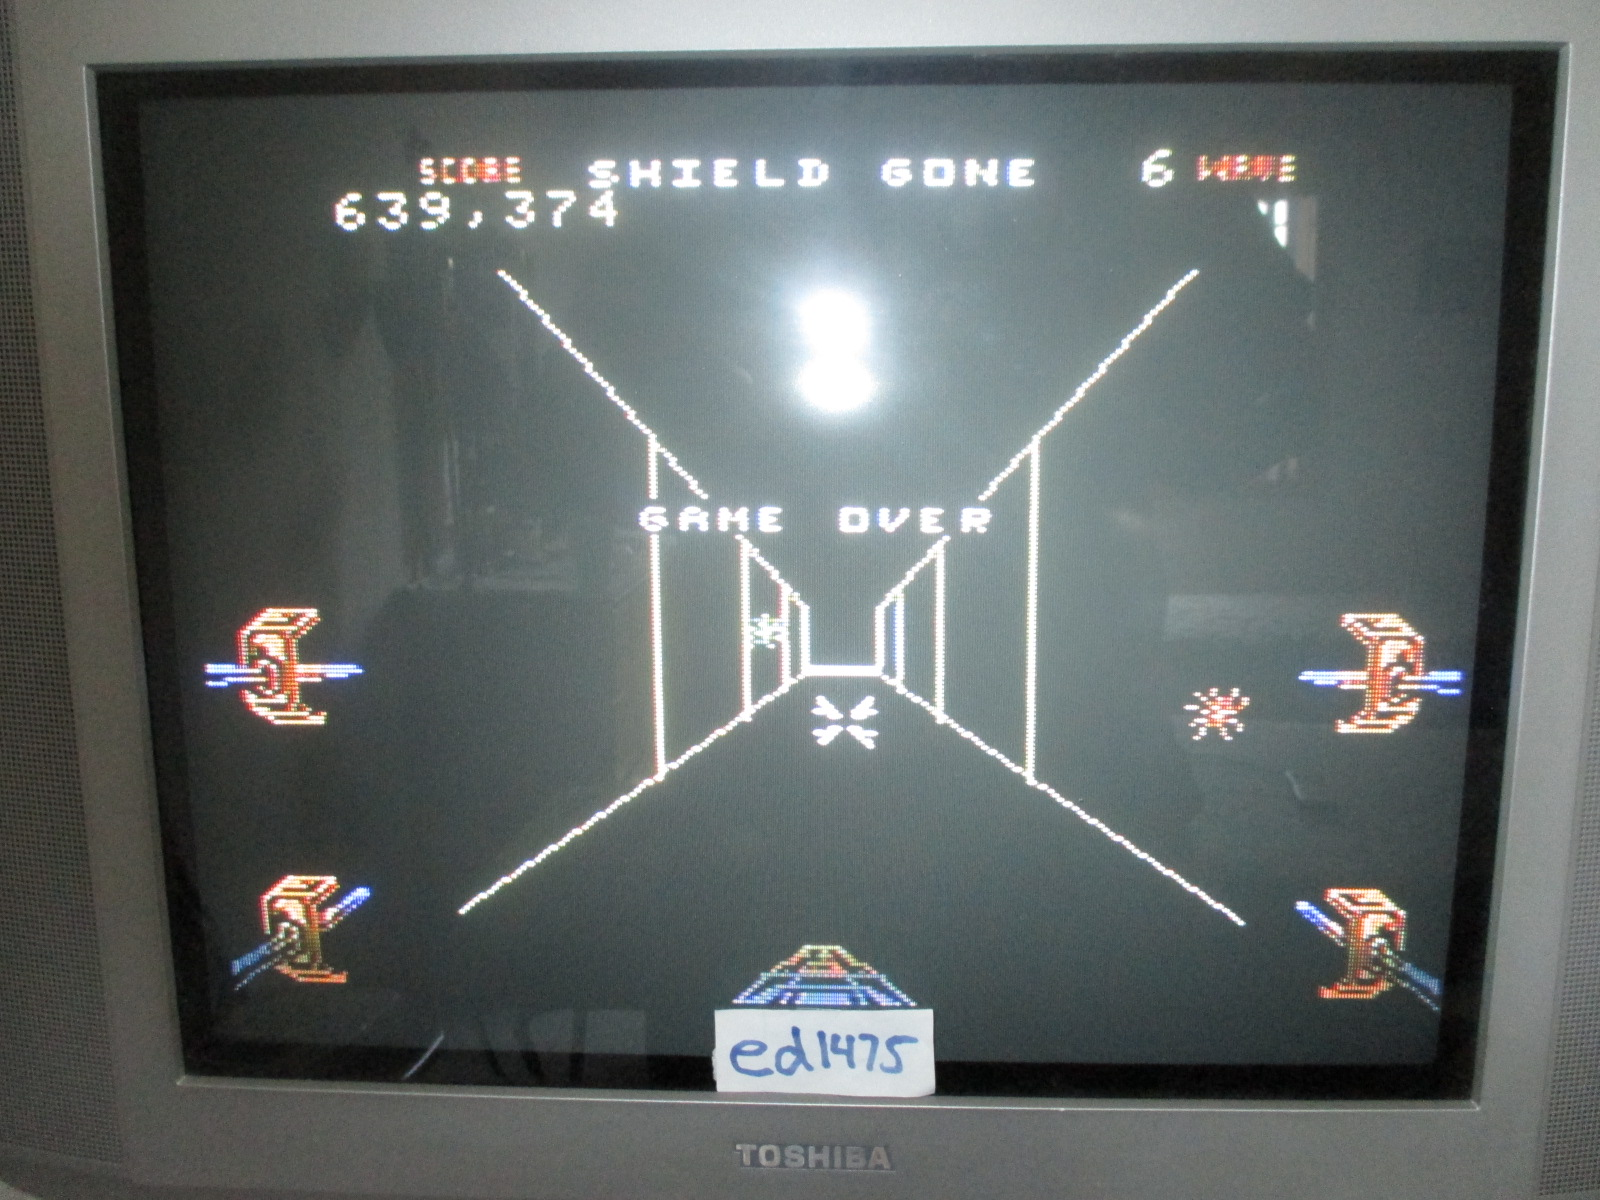 ed1475: Star Wars: The Arcade Game: Easy (Colecovision) 639,374 points on 2014-06-10 20:19:30